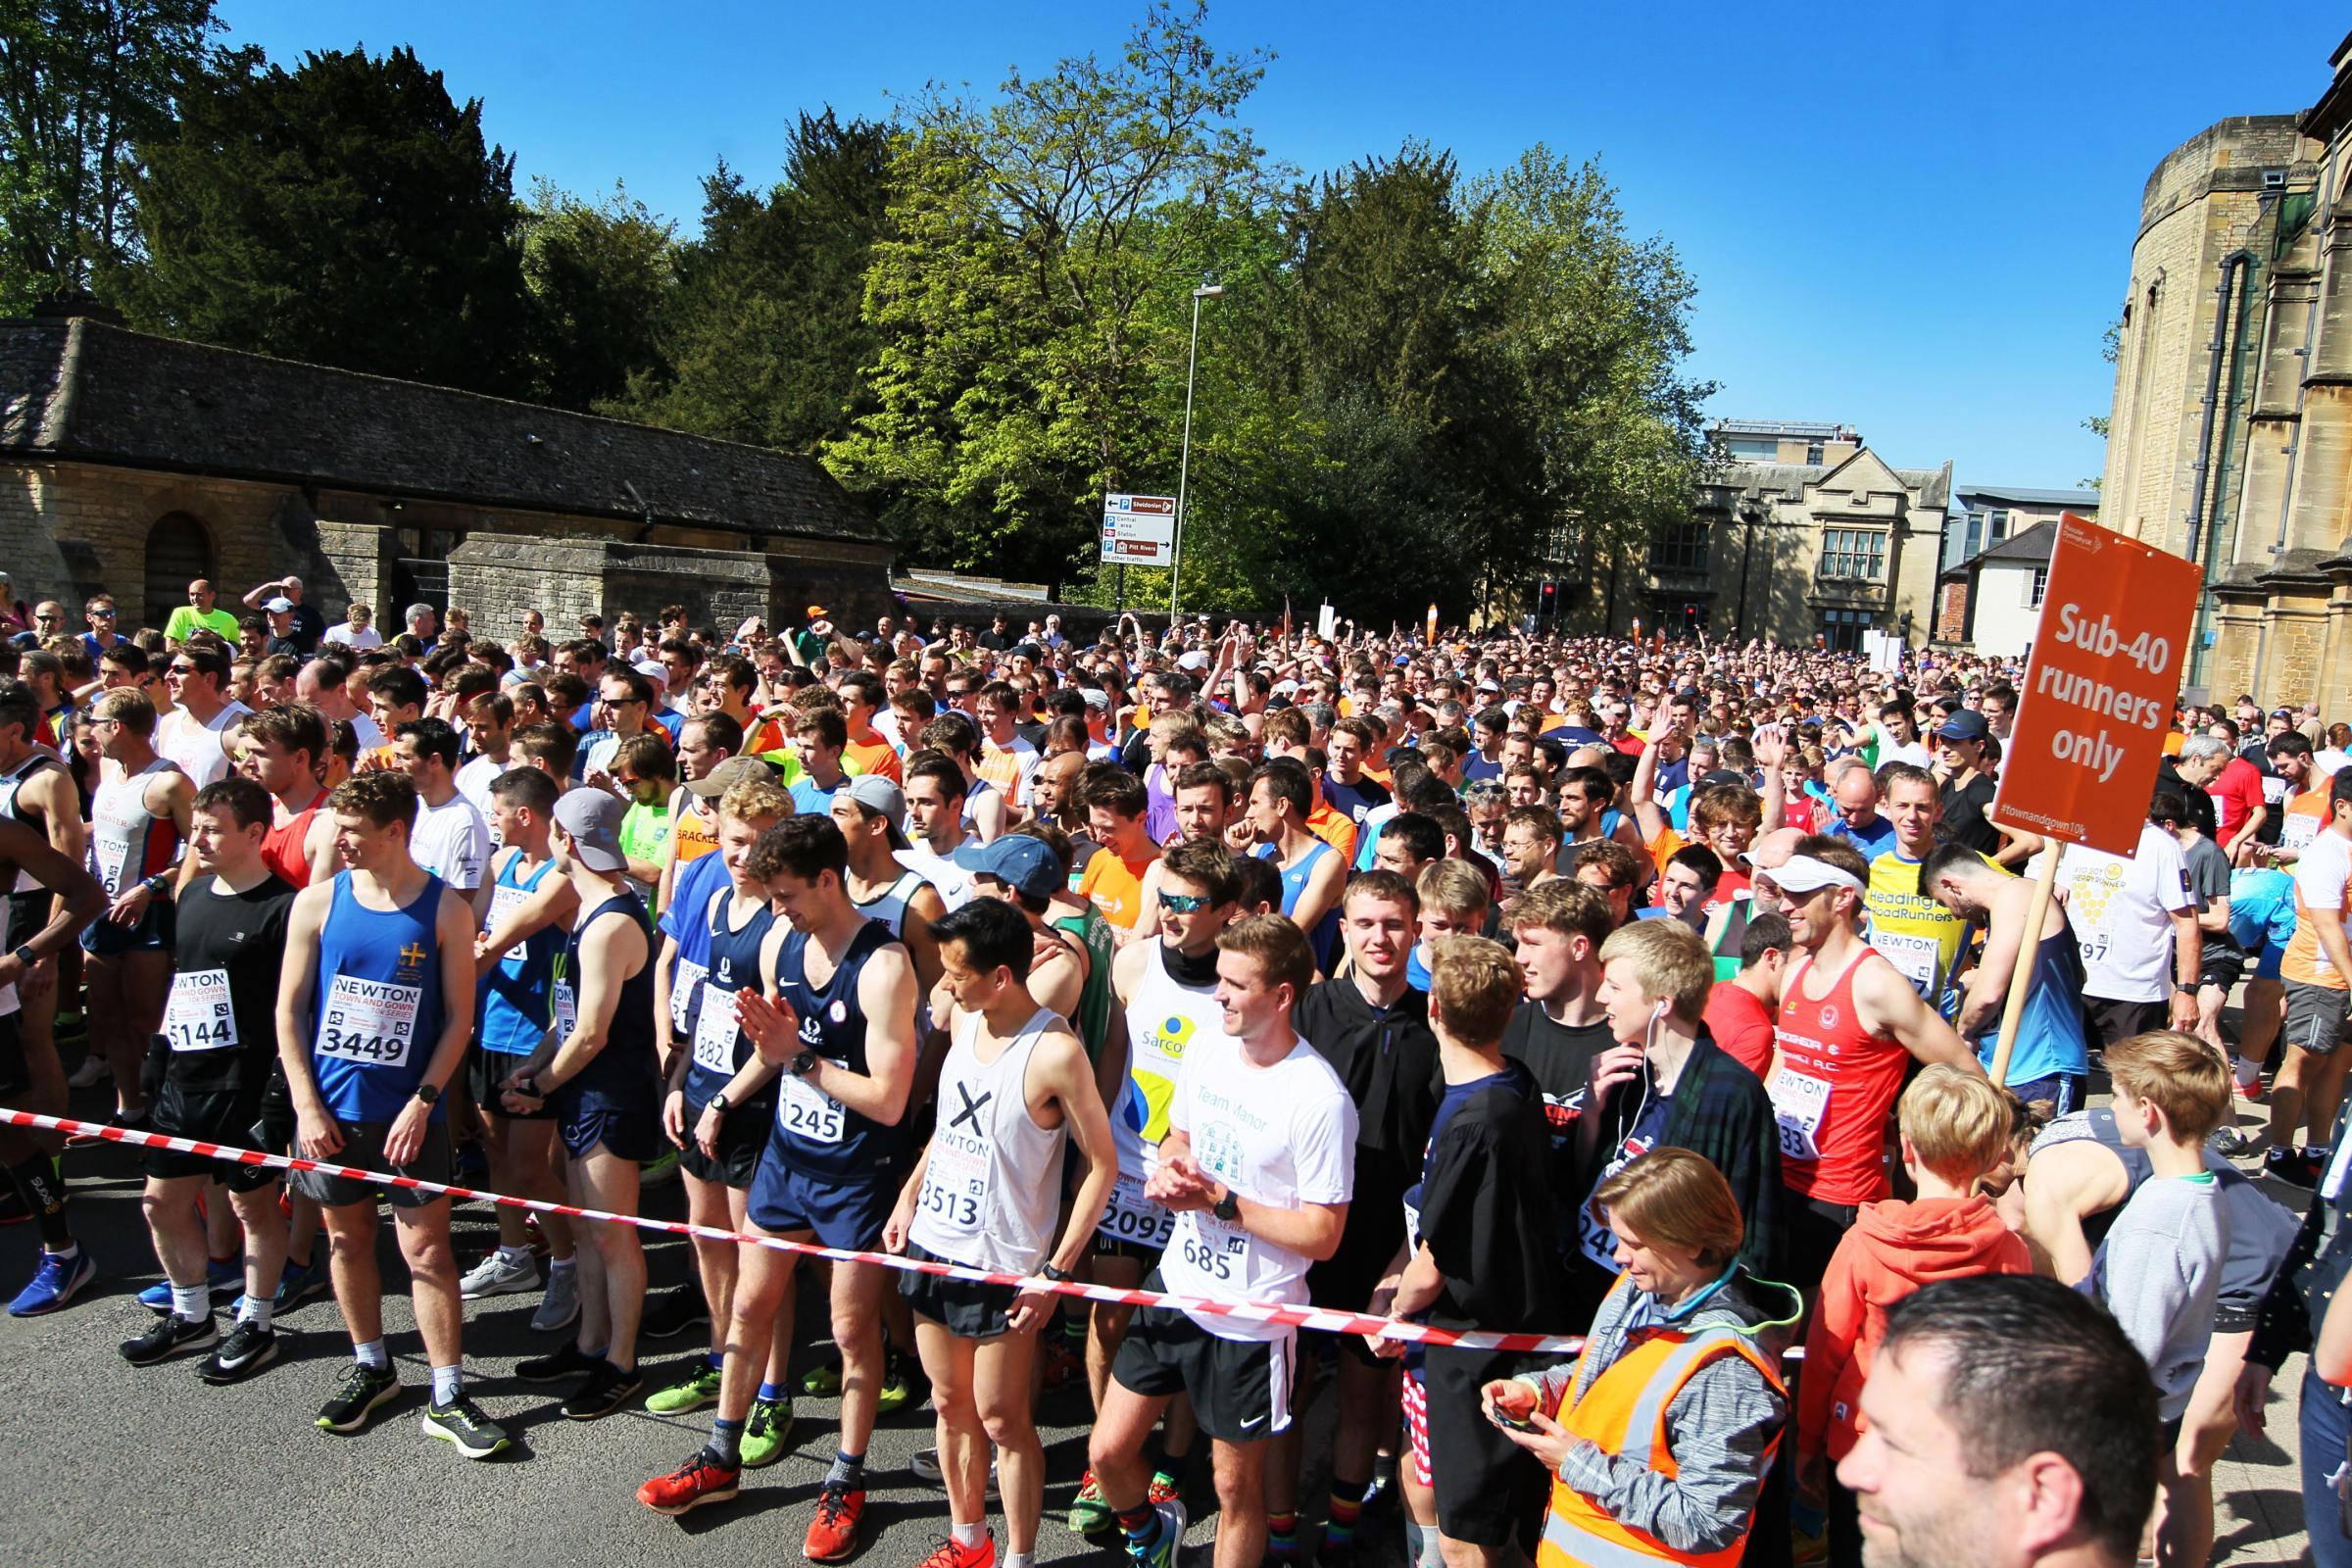 Runners wait at the start line ahead of the Oxford Town and Gown Picture: Ed Nix